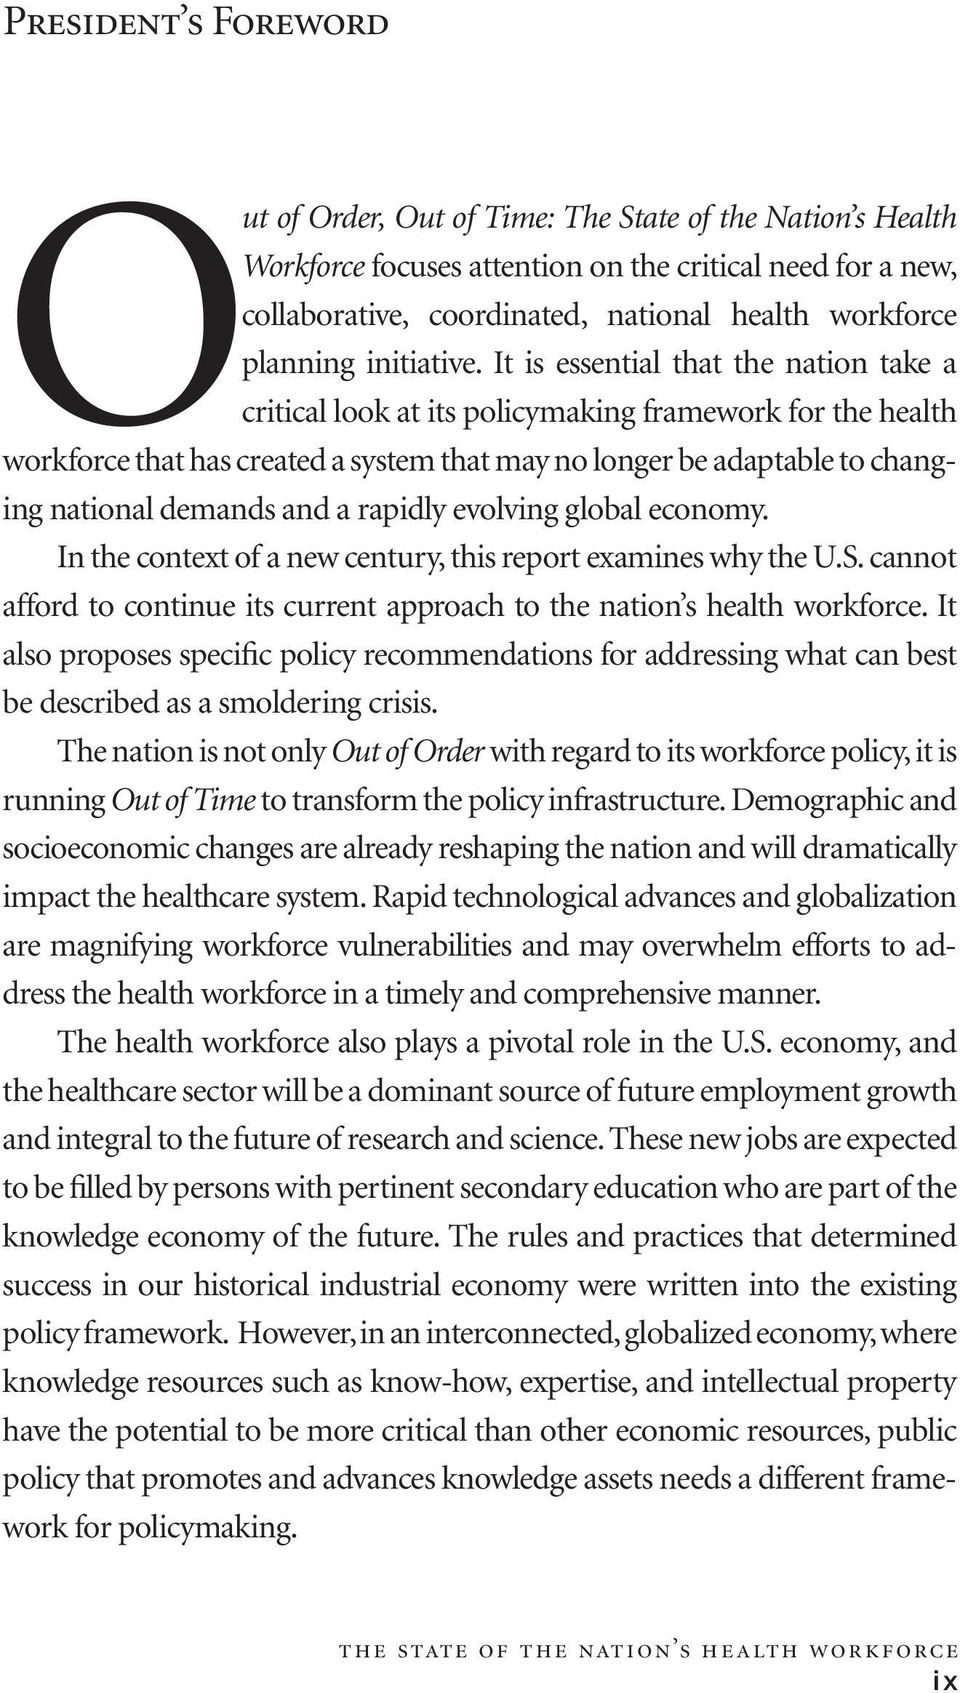 It is essential that the nation take a critical look at its policymaking framework for the health workforce that has created a system that may no longer be adaptable to changing national demands and